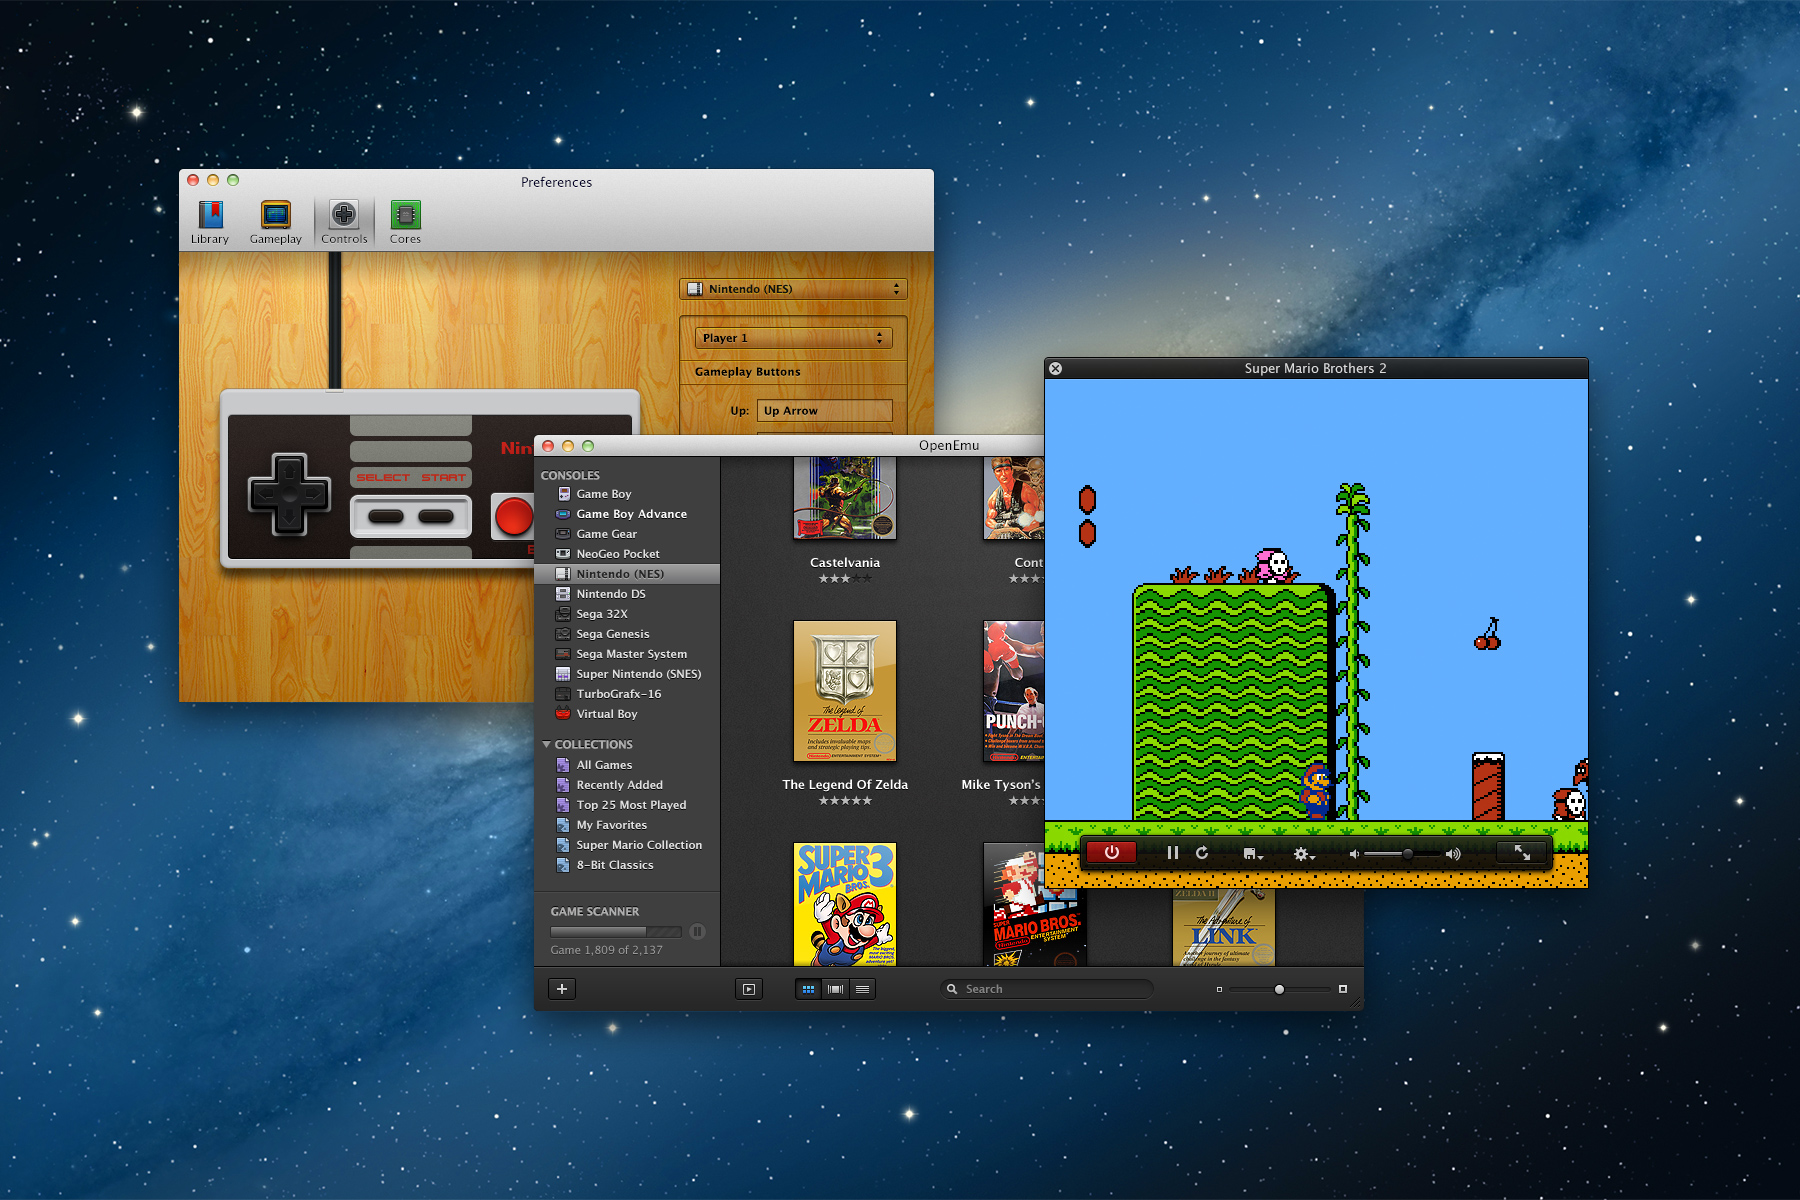 Hands on with openemu 1 0 a gorgeous classic console emulator for os x ars technica - Retro game emulator console ...